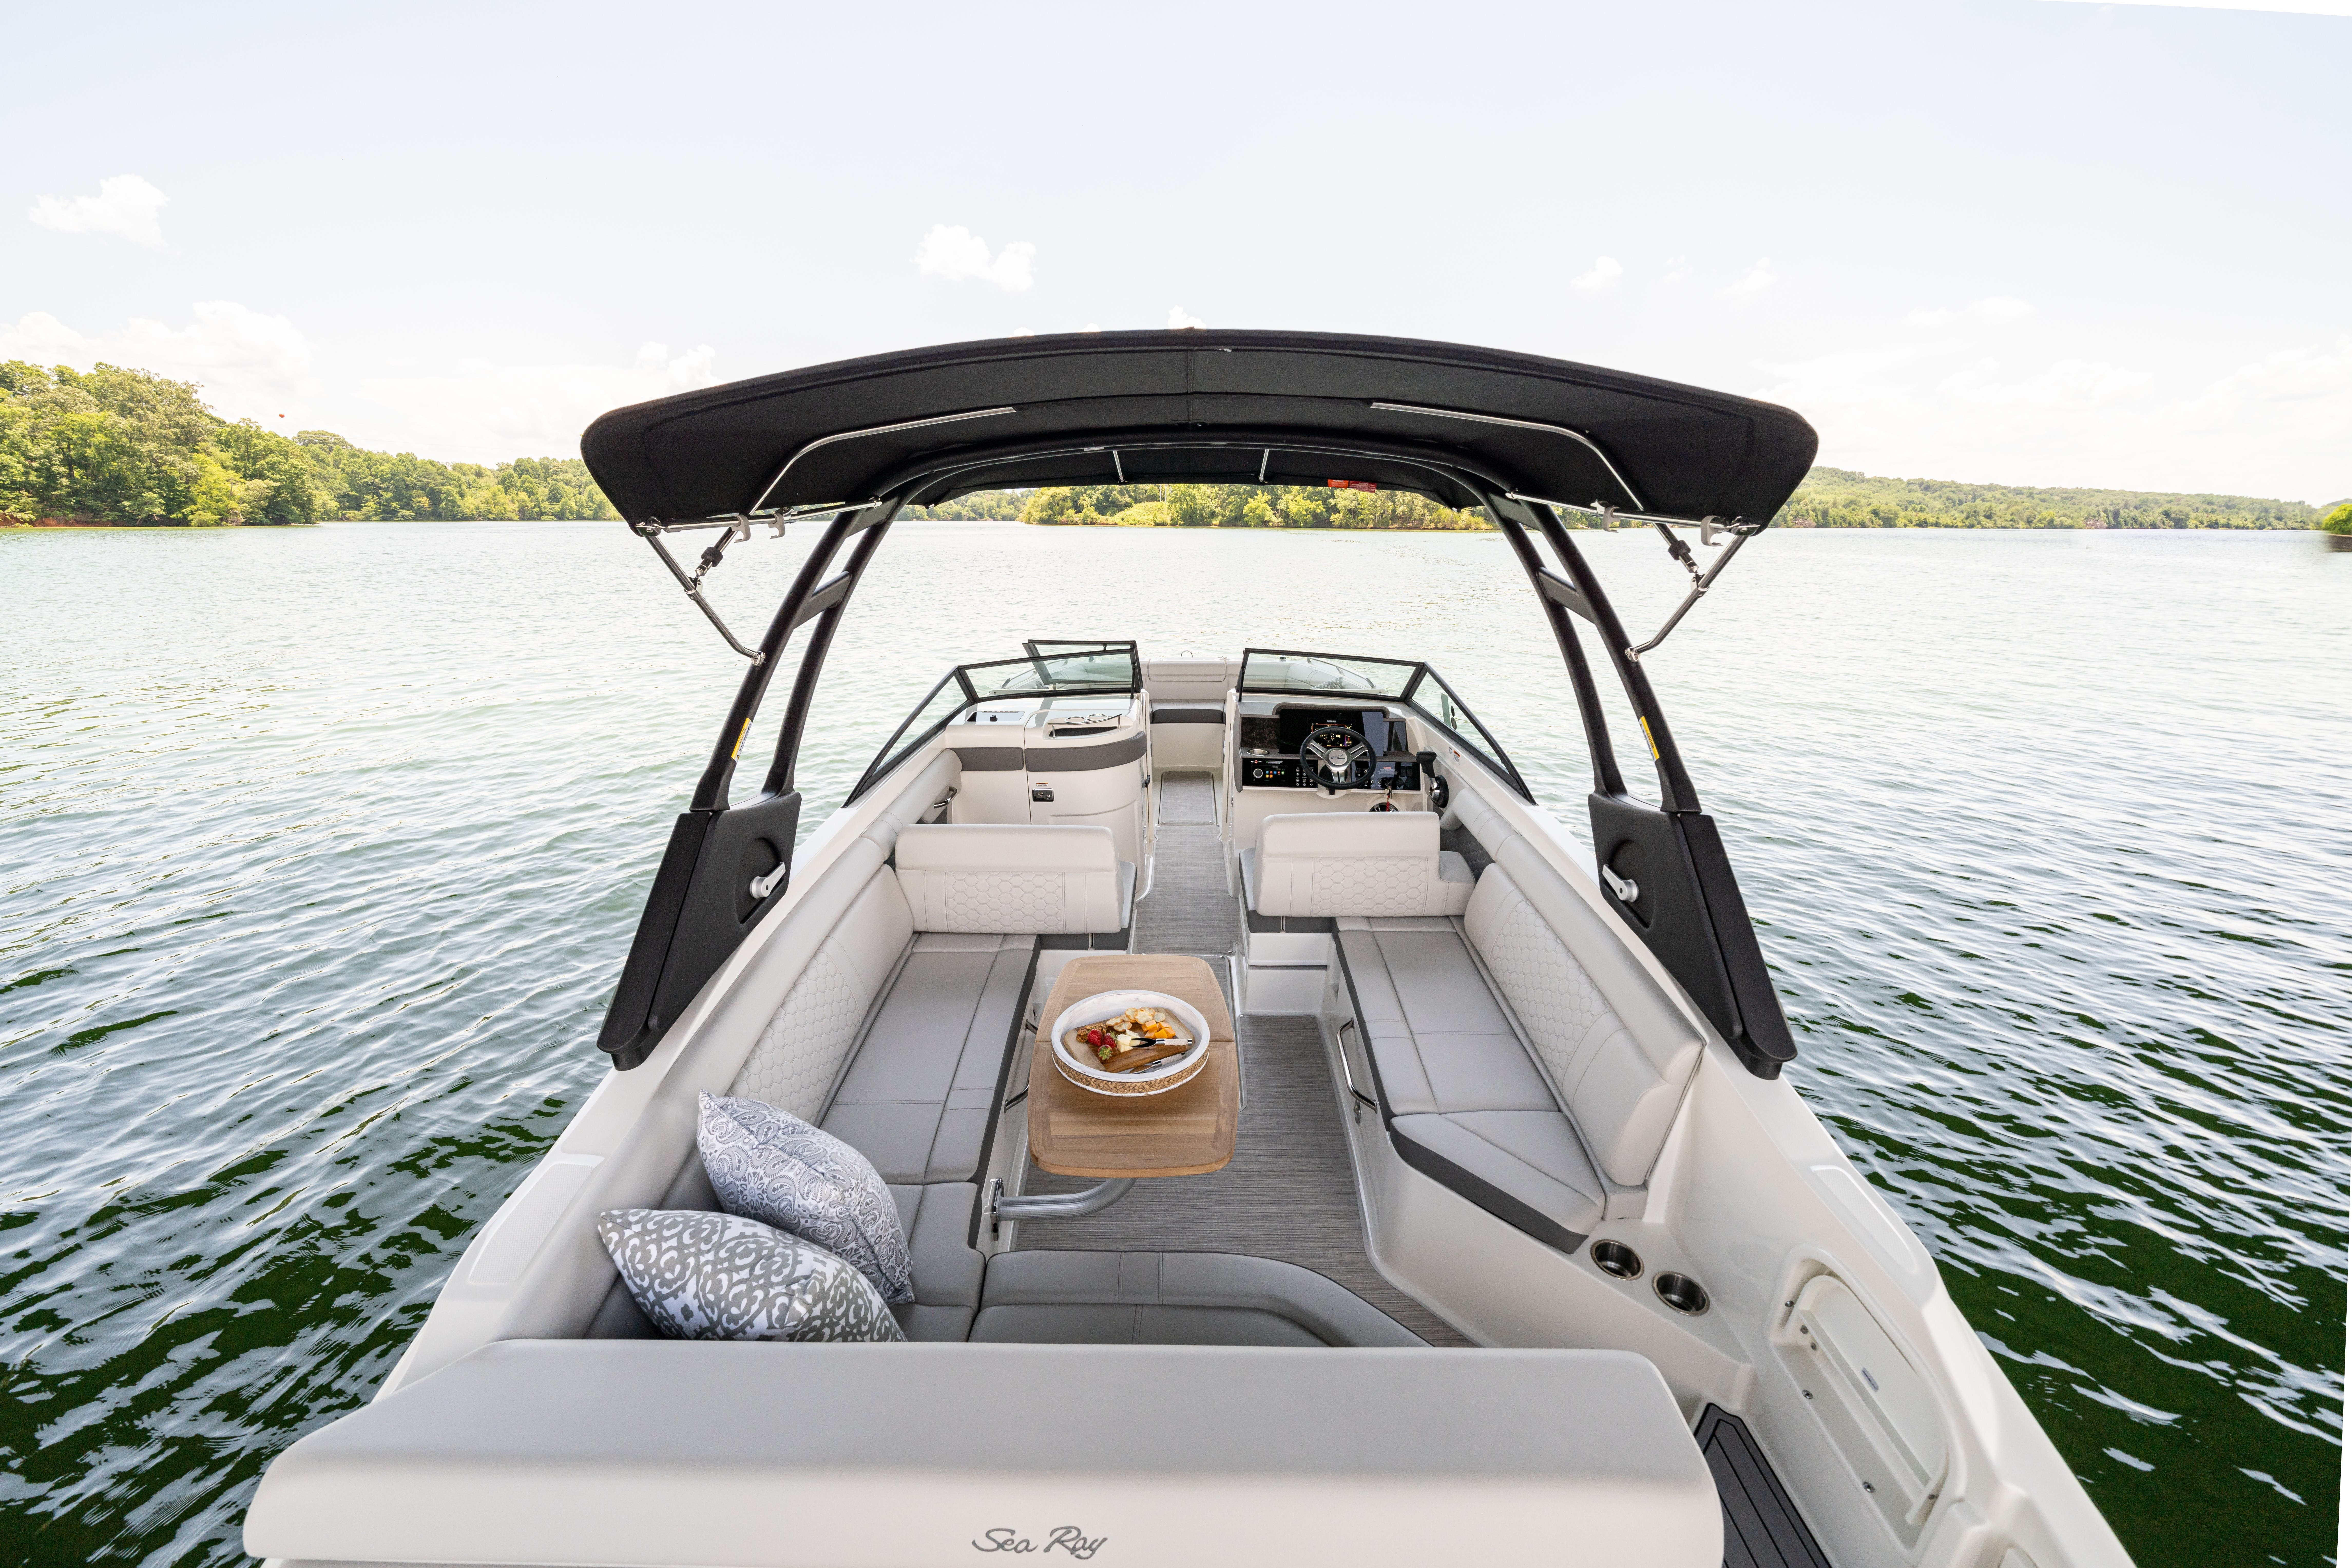 2022 Sea Ray boat for sale, model of the boat is 270sdx & Image # 4 of 6